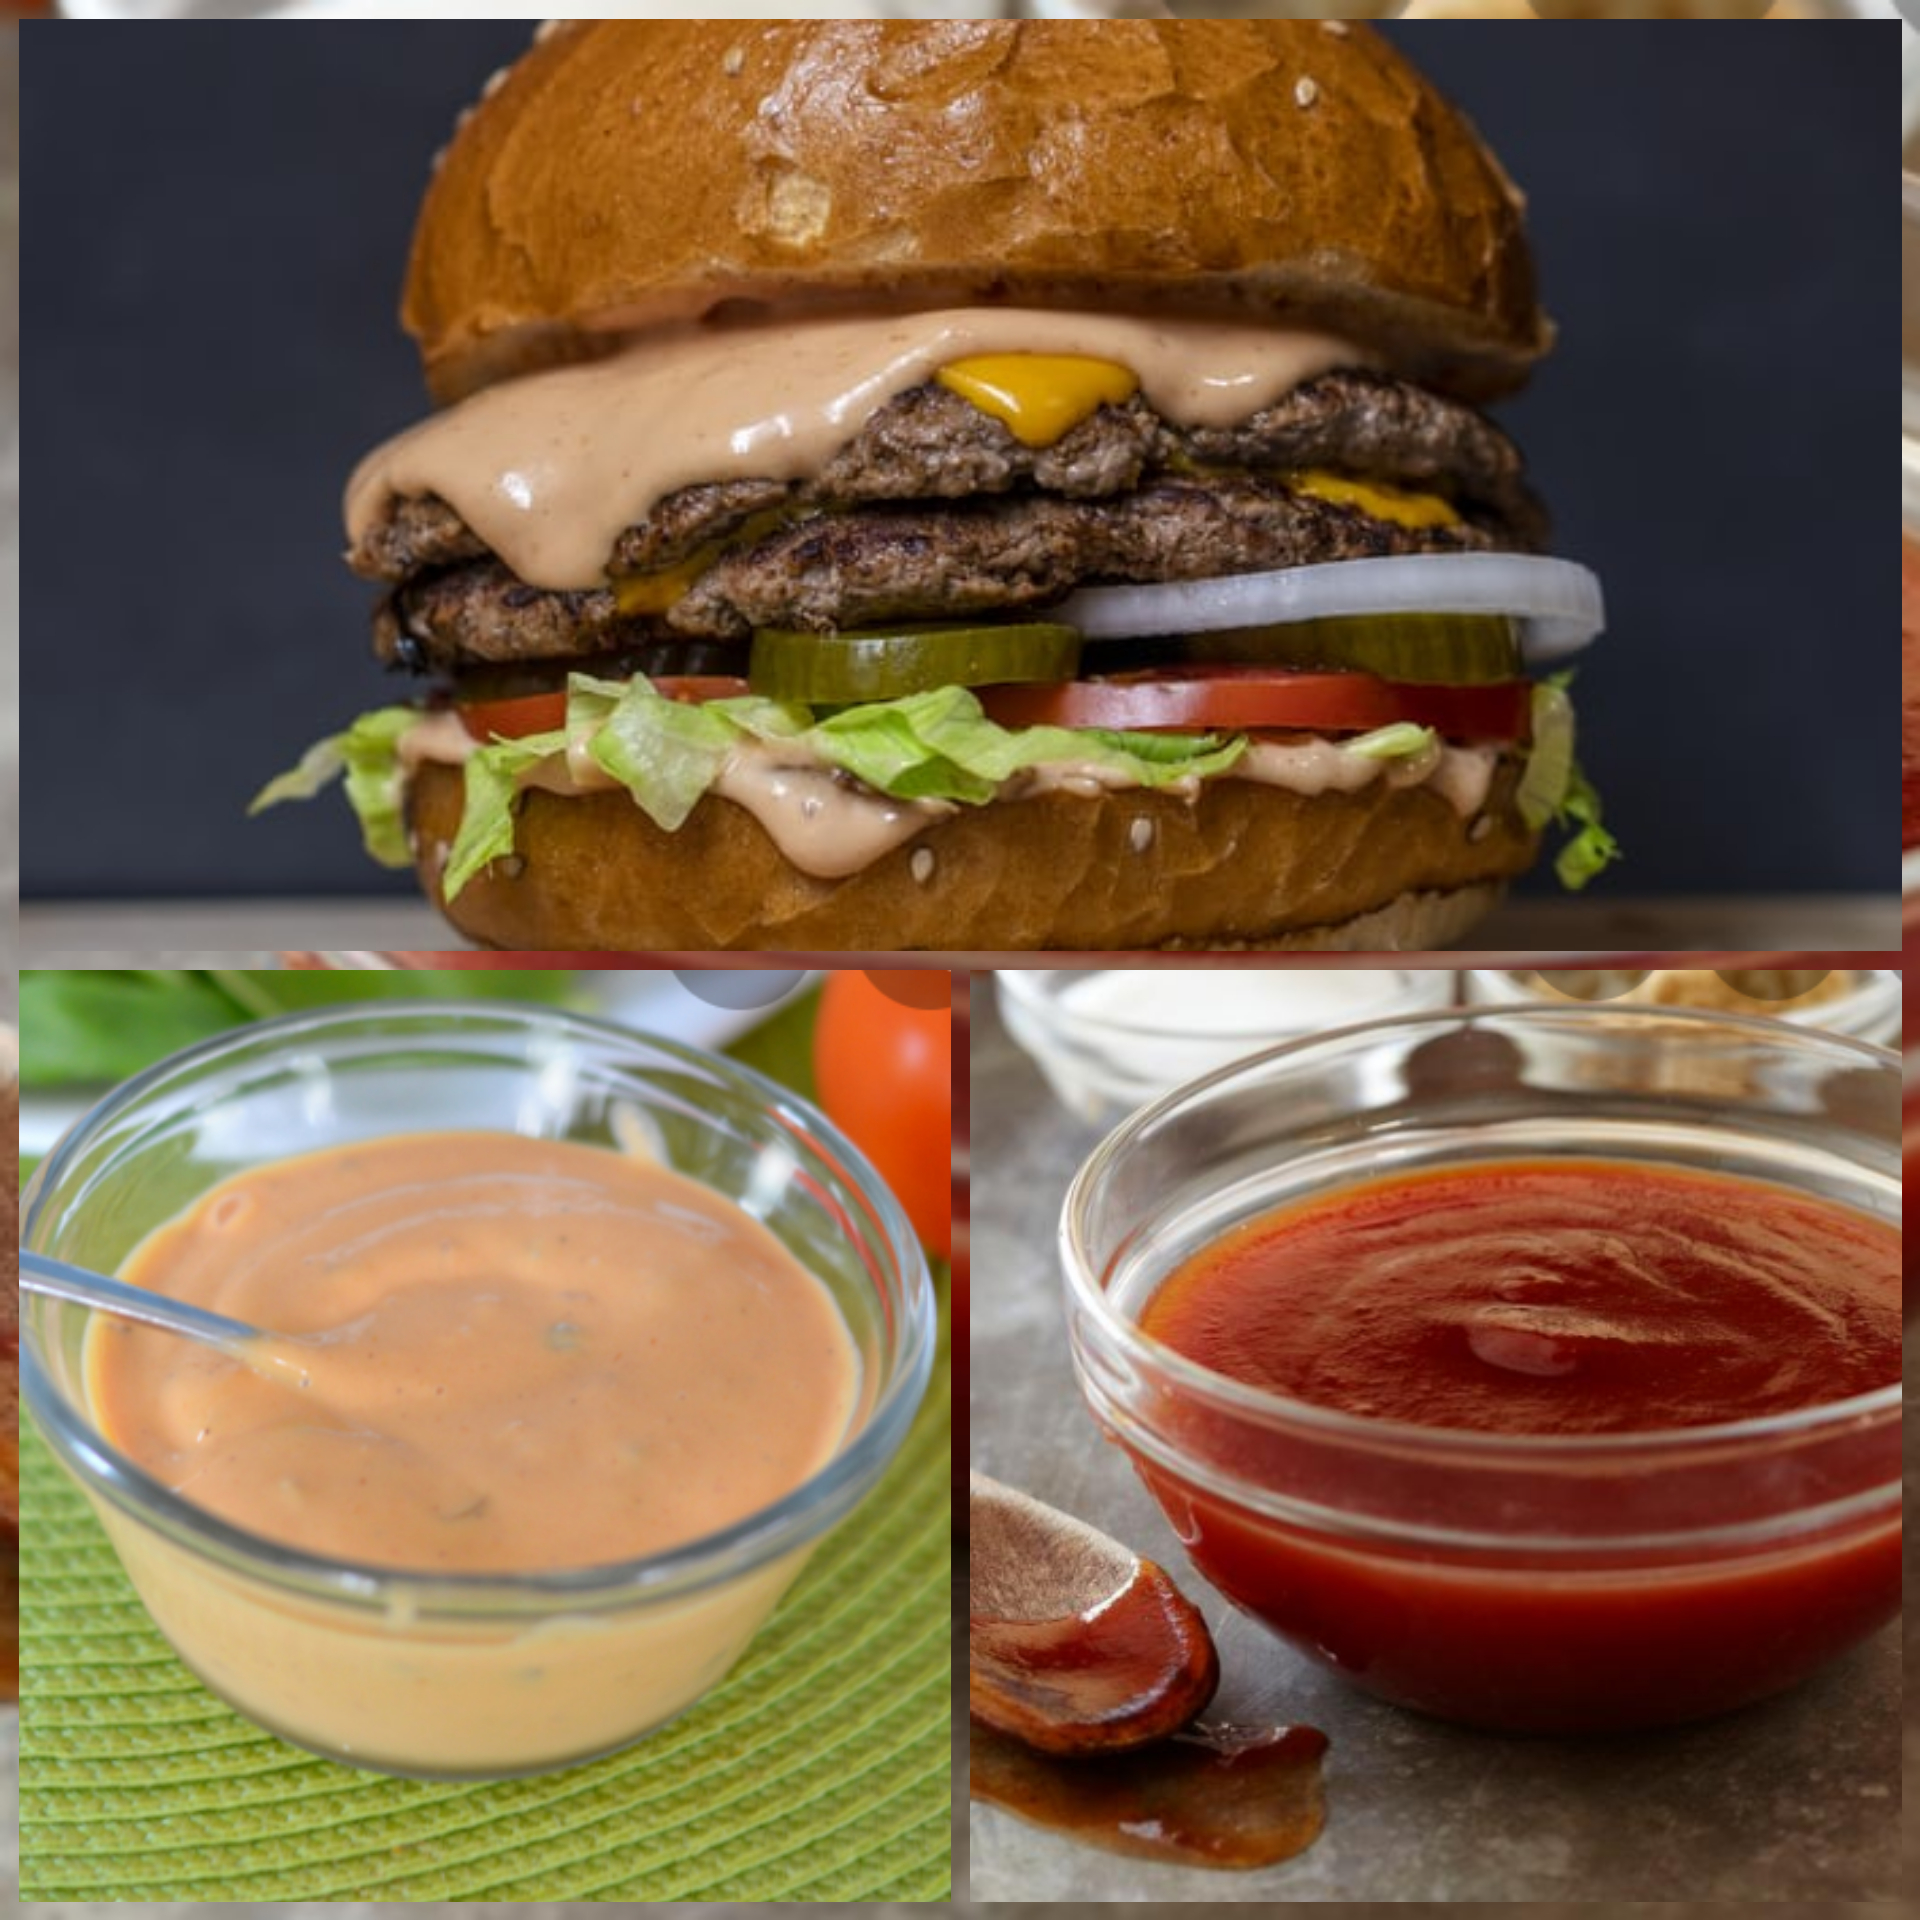 Make Your Own Burgers